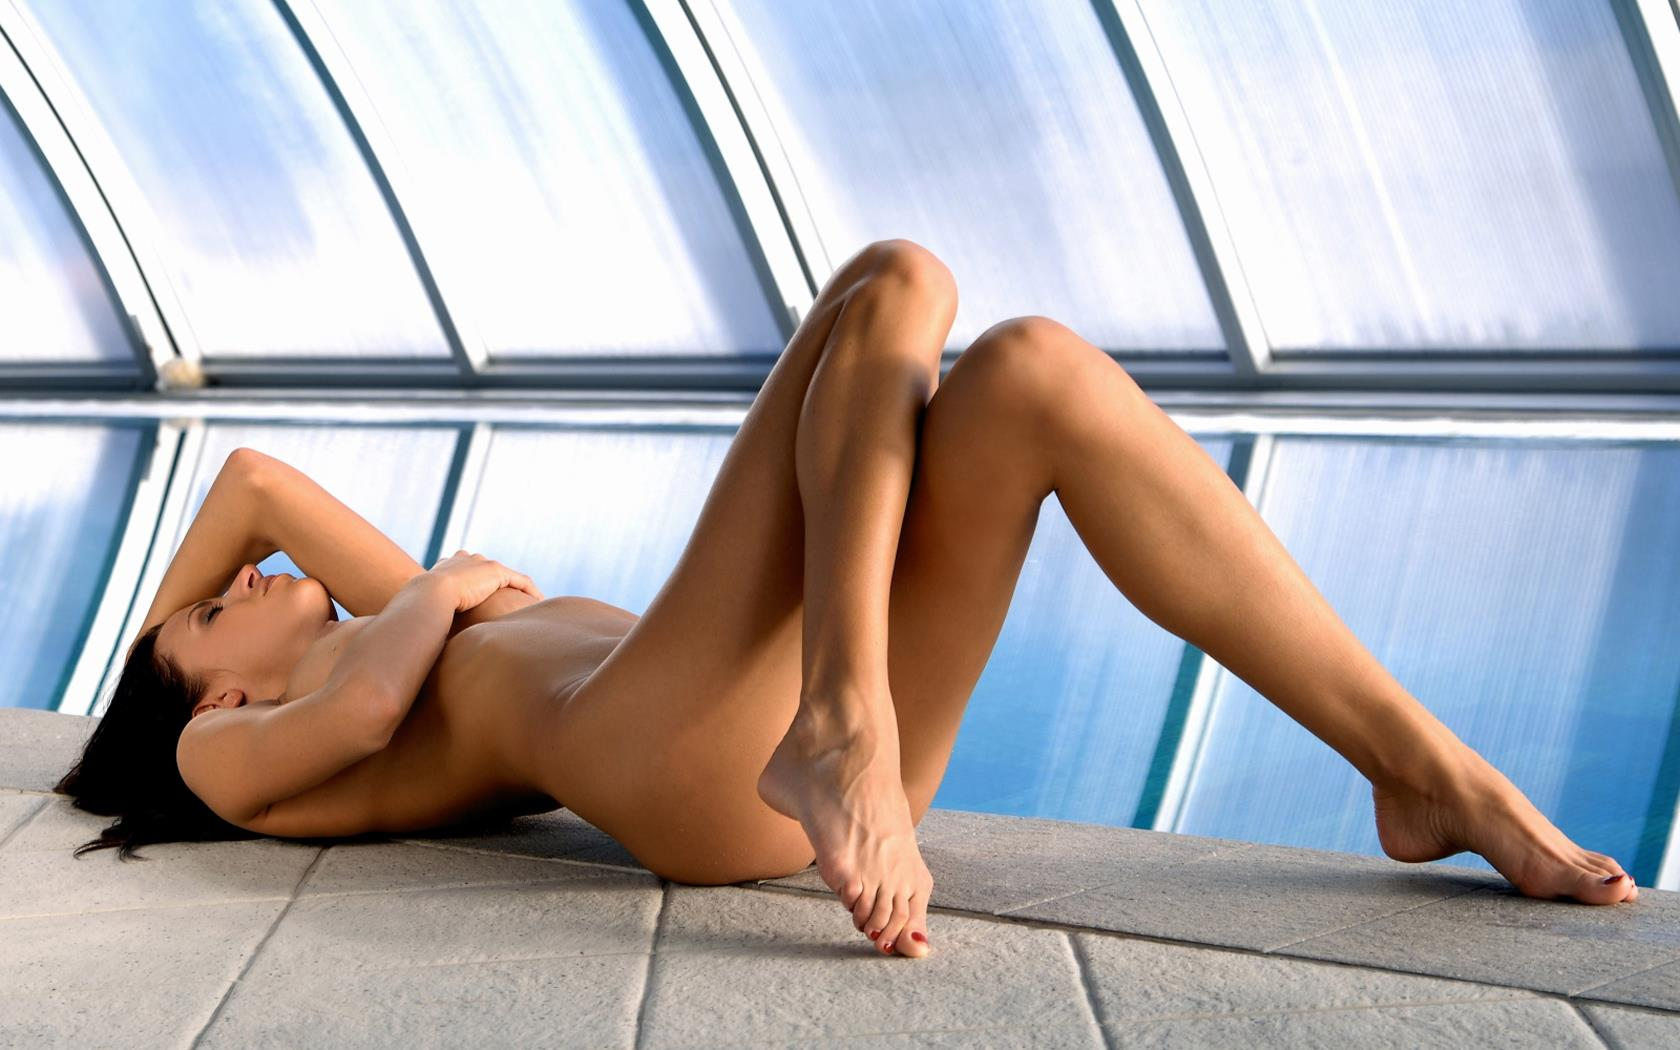 nouvelle-serie-sexy-wallpapers-extra-large_08